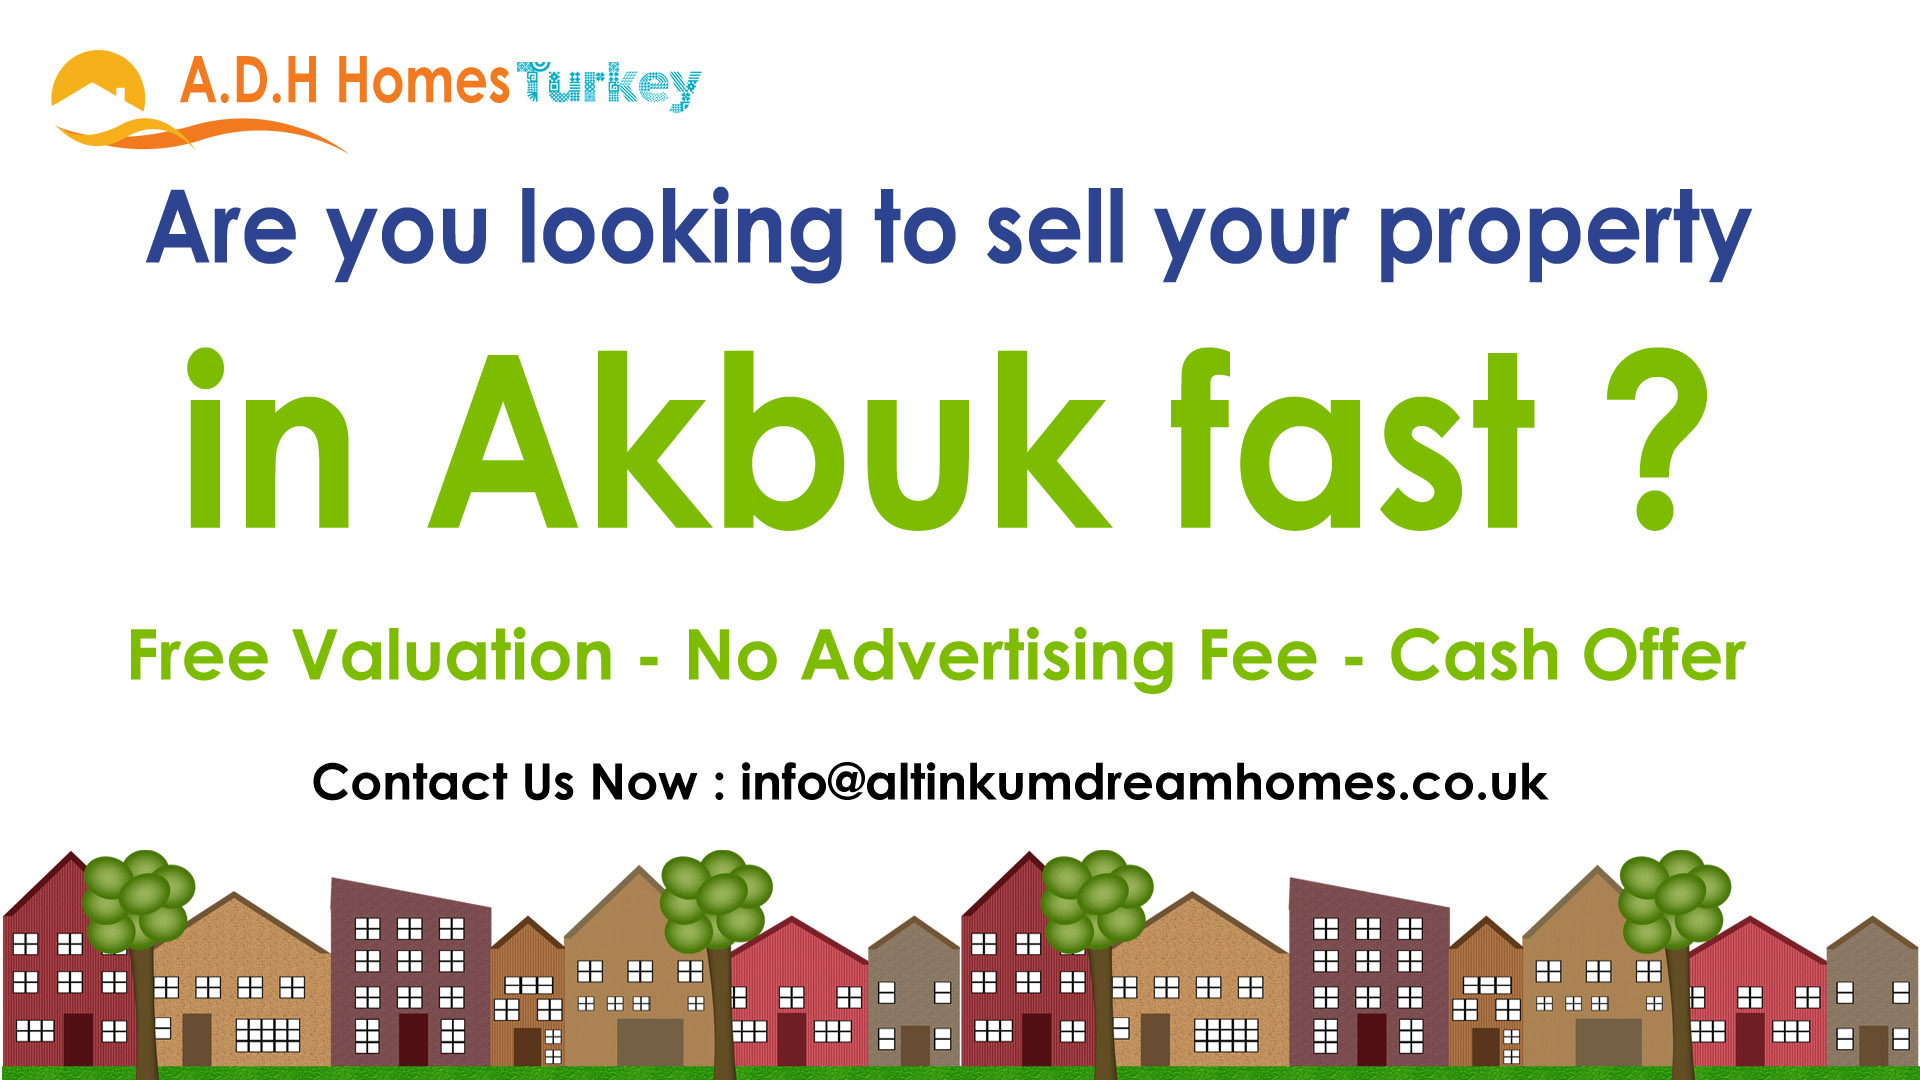 Akbuk Real estate Agency advice, want to sell my property in akbuk turkey, how can i sell my property in turkey, akbuk real estate agencies, decent real estate ageny in akbuk, akbuk homes, akbuk estate agency, akbuk real estate, A.D.H Homes Turkey